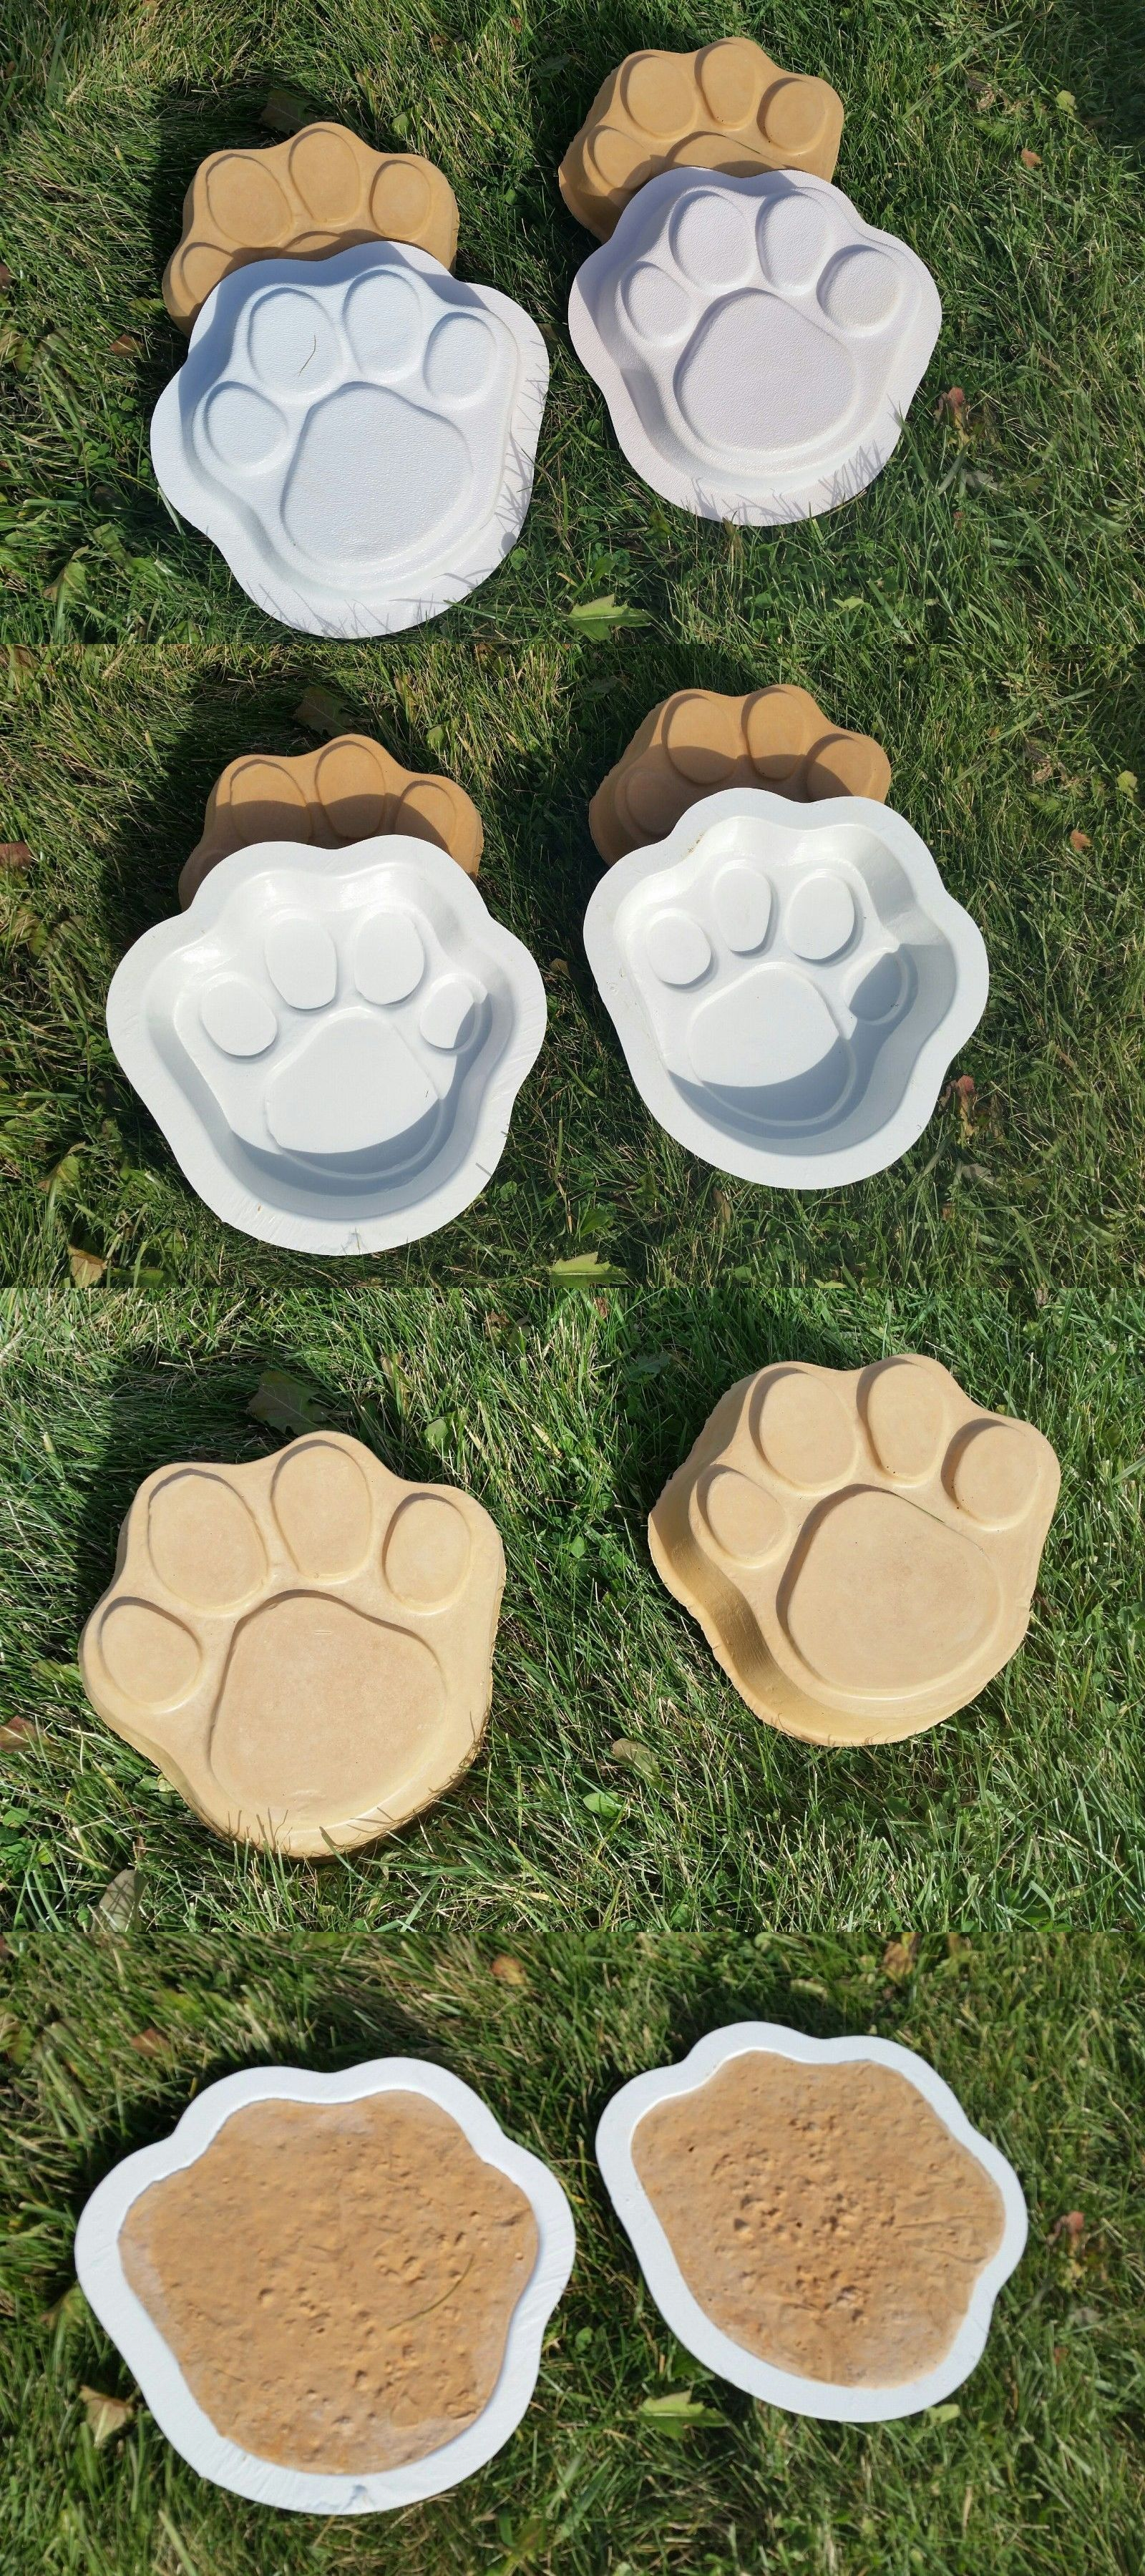 Decorative Stepping Stones 118863: Small Dog Cat Paw Print Concrete Cement Stepping Stone Mold -> BUY IT NOW ONLY: $26 on #eBay #decorative #stepping #stones #small #print #concrete #cement #stone #steppingstonespathway Decorative Stepping Stones 118863: Small Dog Cat Paw Print Concrete Cement Stepping Stone Mold -> BUY IT NOW ONLY: $26 on #eBay #decorative #stepping #stones #small #print #concrete #cement #stone #steppingstonespathway